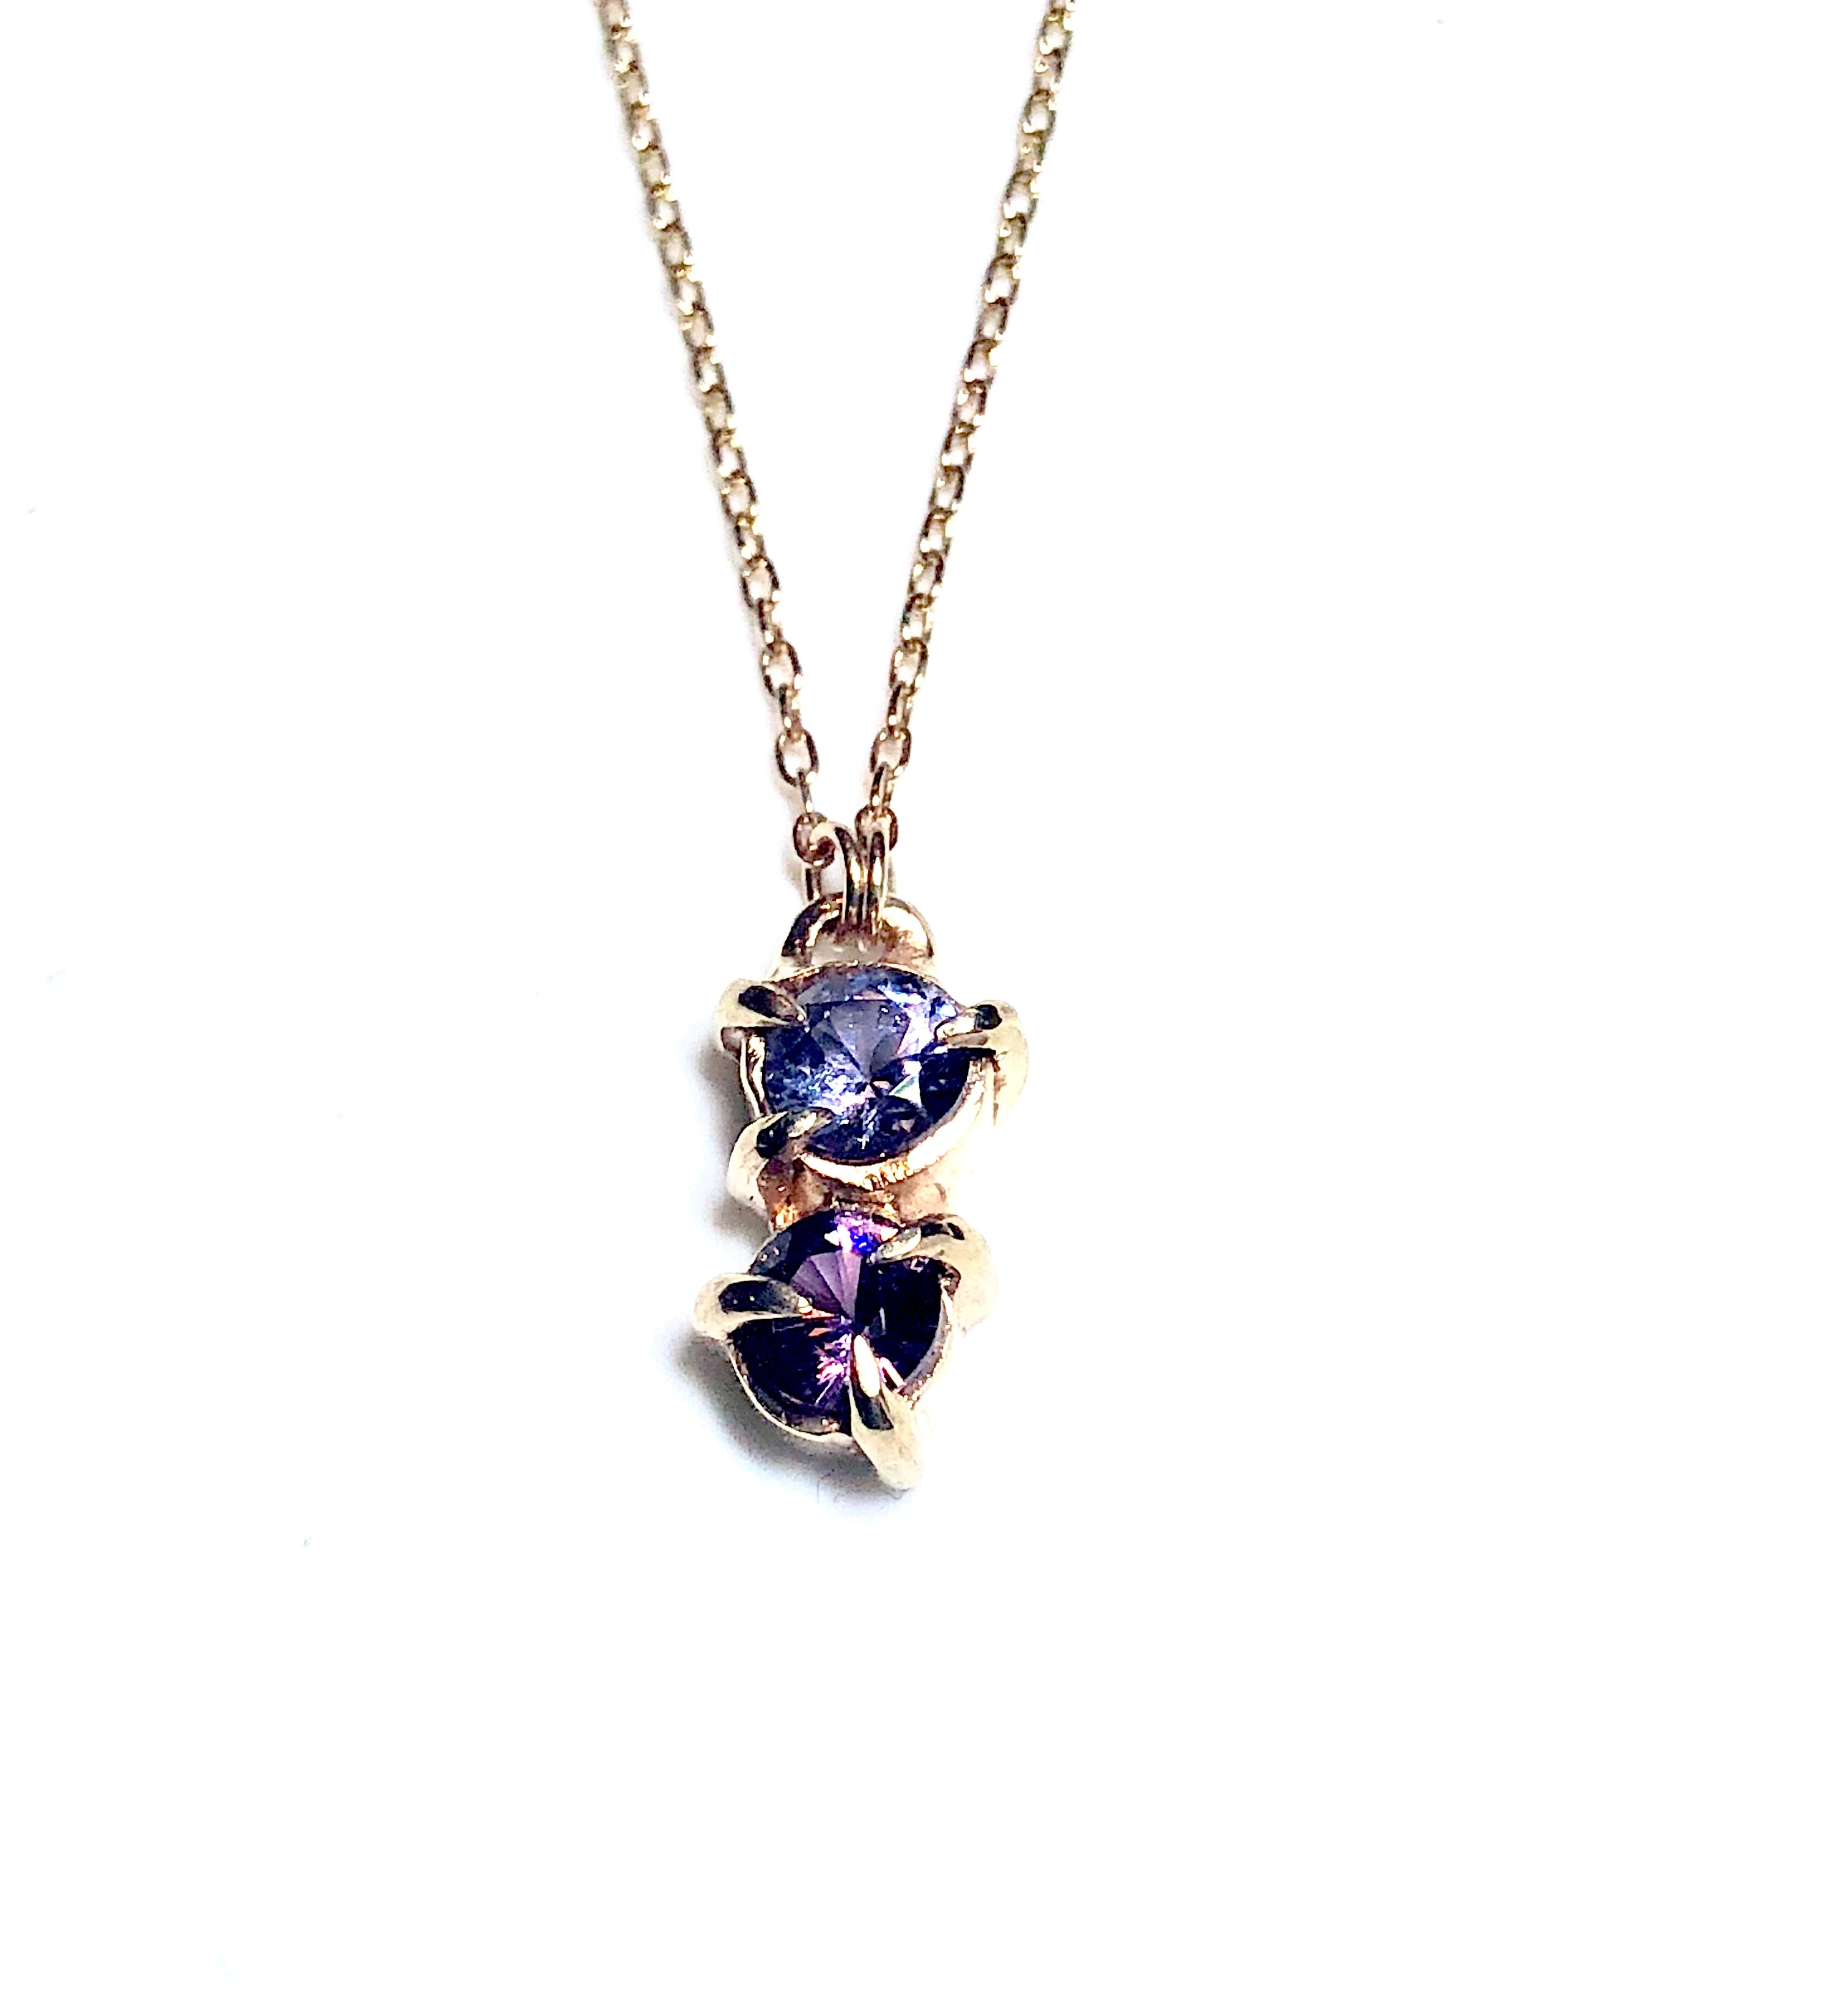 yg amethyst druzy chain cable spinel and a necklace accent gemstone inch on zoe piper products